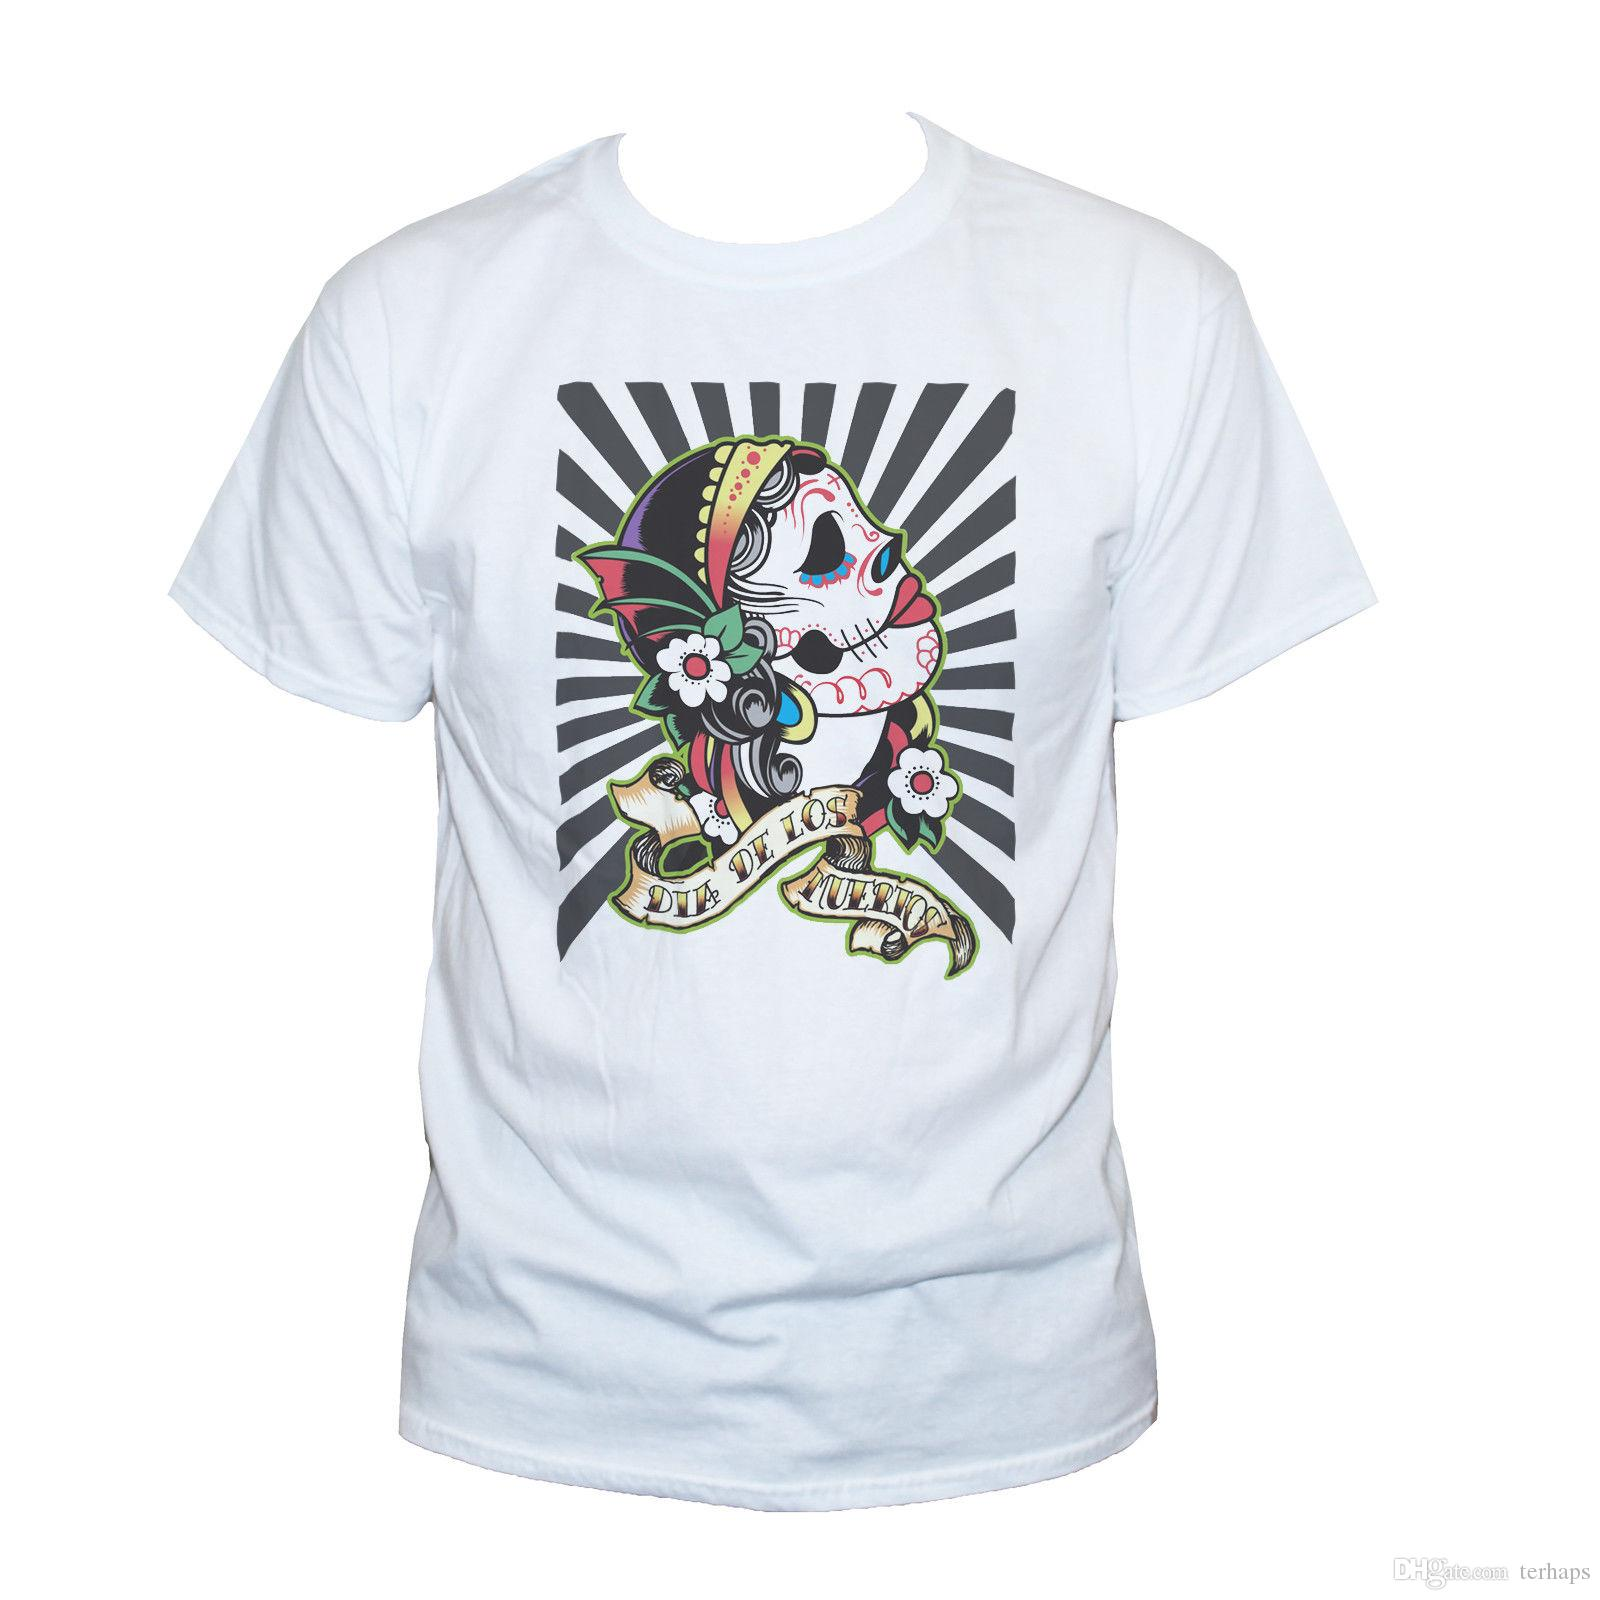 636213935 MEXICAN SKULL T SHIRT Goth Tattoo Punk Rockabilly Graphic Printed Tee  Unisex Men T Shirts Men Shirts Men Clothes Online with $12.98/Piece on  Tshirt4you's ...